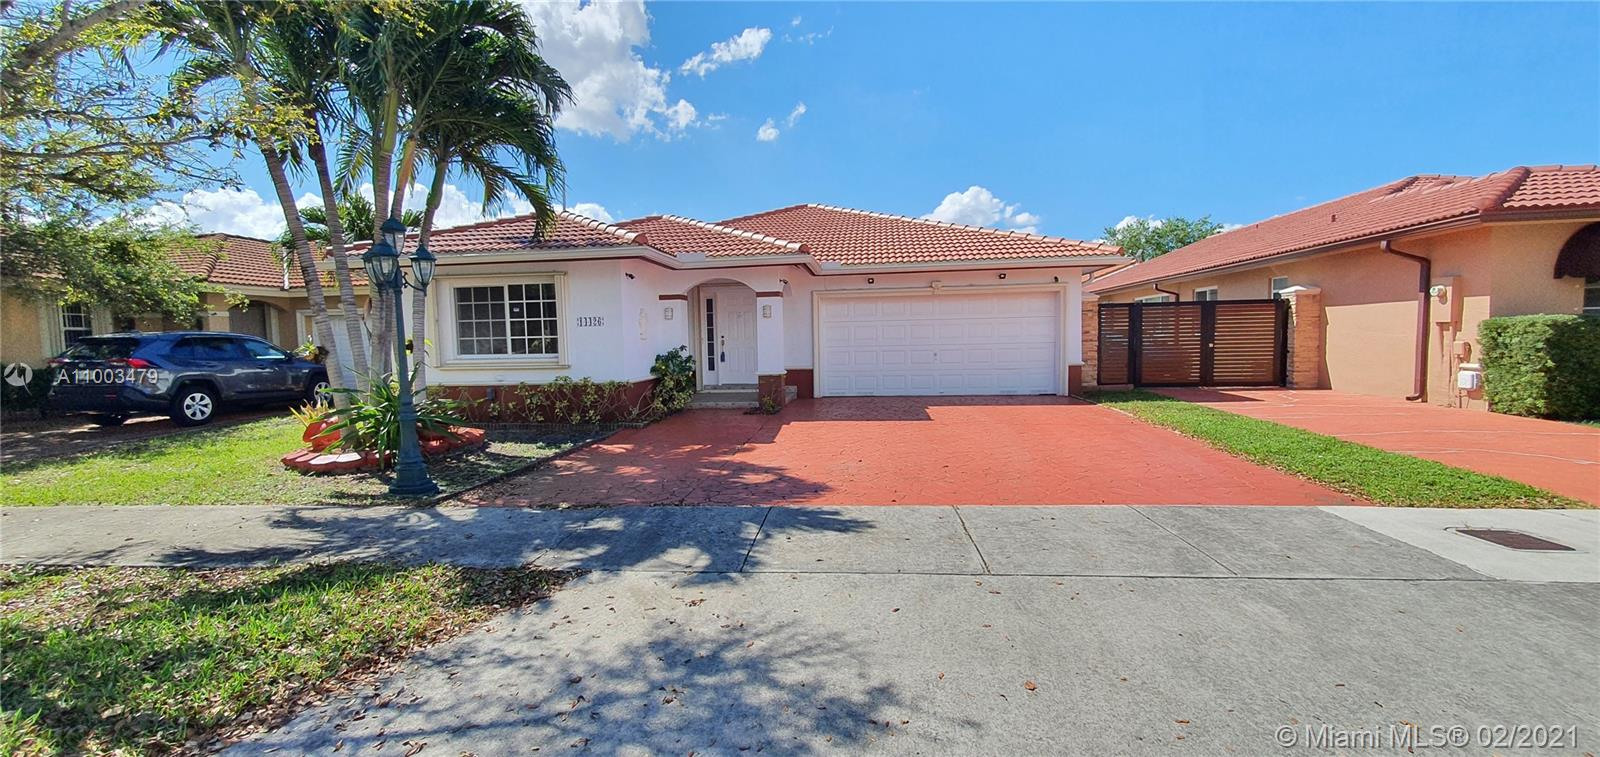 Miami Lakes - 14426 NW 88th Ave, Miami Lakes, FL 33018